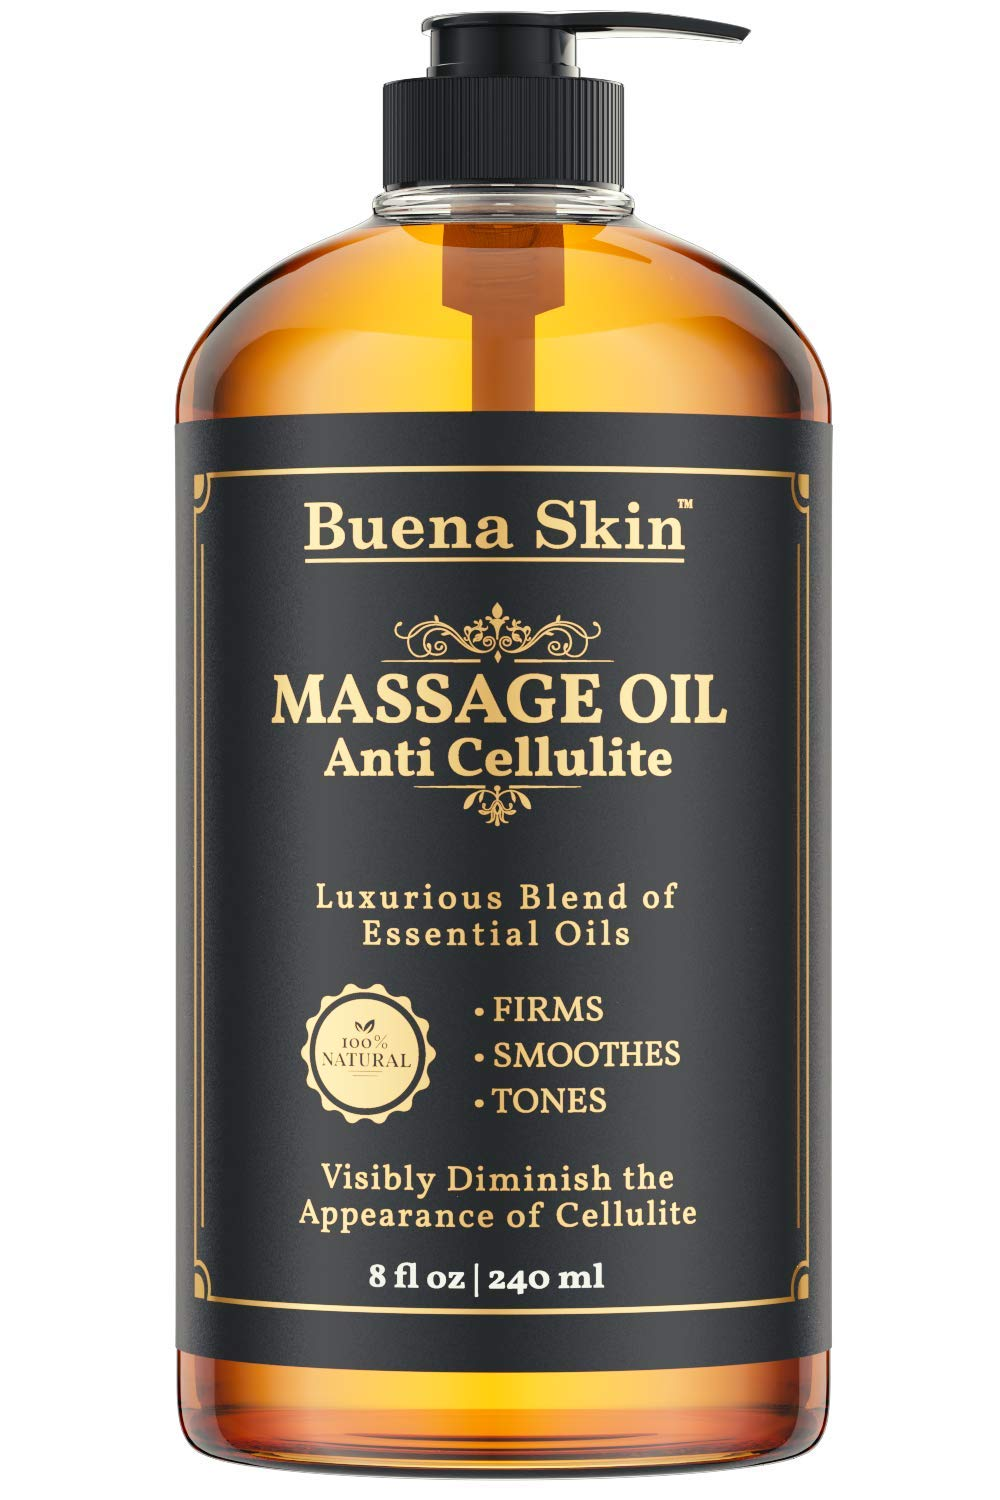 Cellulite Treatment Massage Oil - Penetrates Skin 6X Deeper Than Cellulite Cream -100% Natural Ingredients, Targets Unwanted Fat Tissue - by Buena Skin 8 OZ